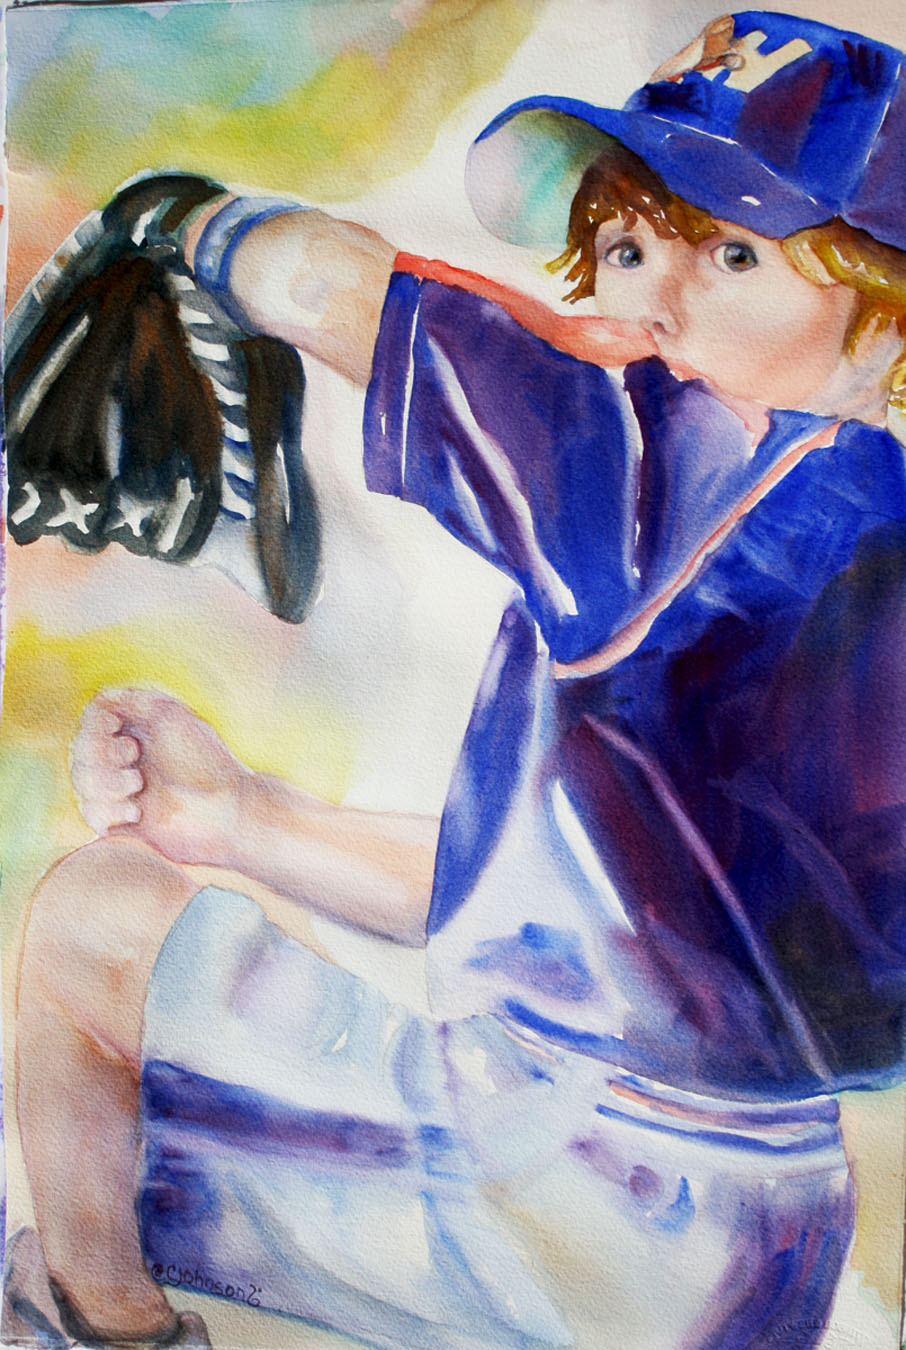 Watercolor of young boy pretending to pitch the ball